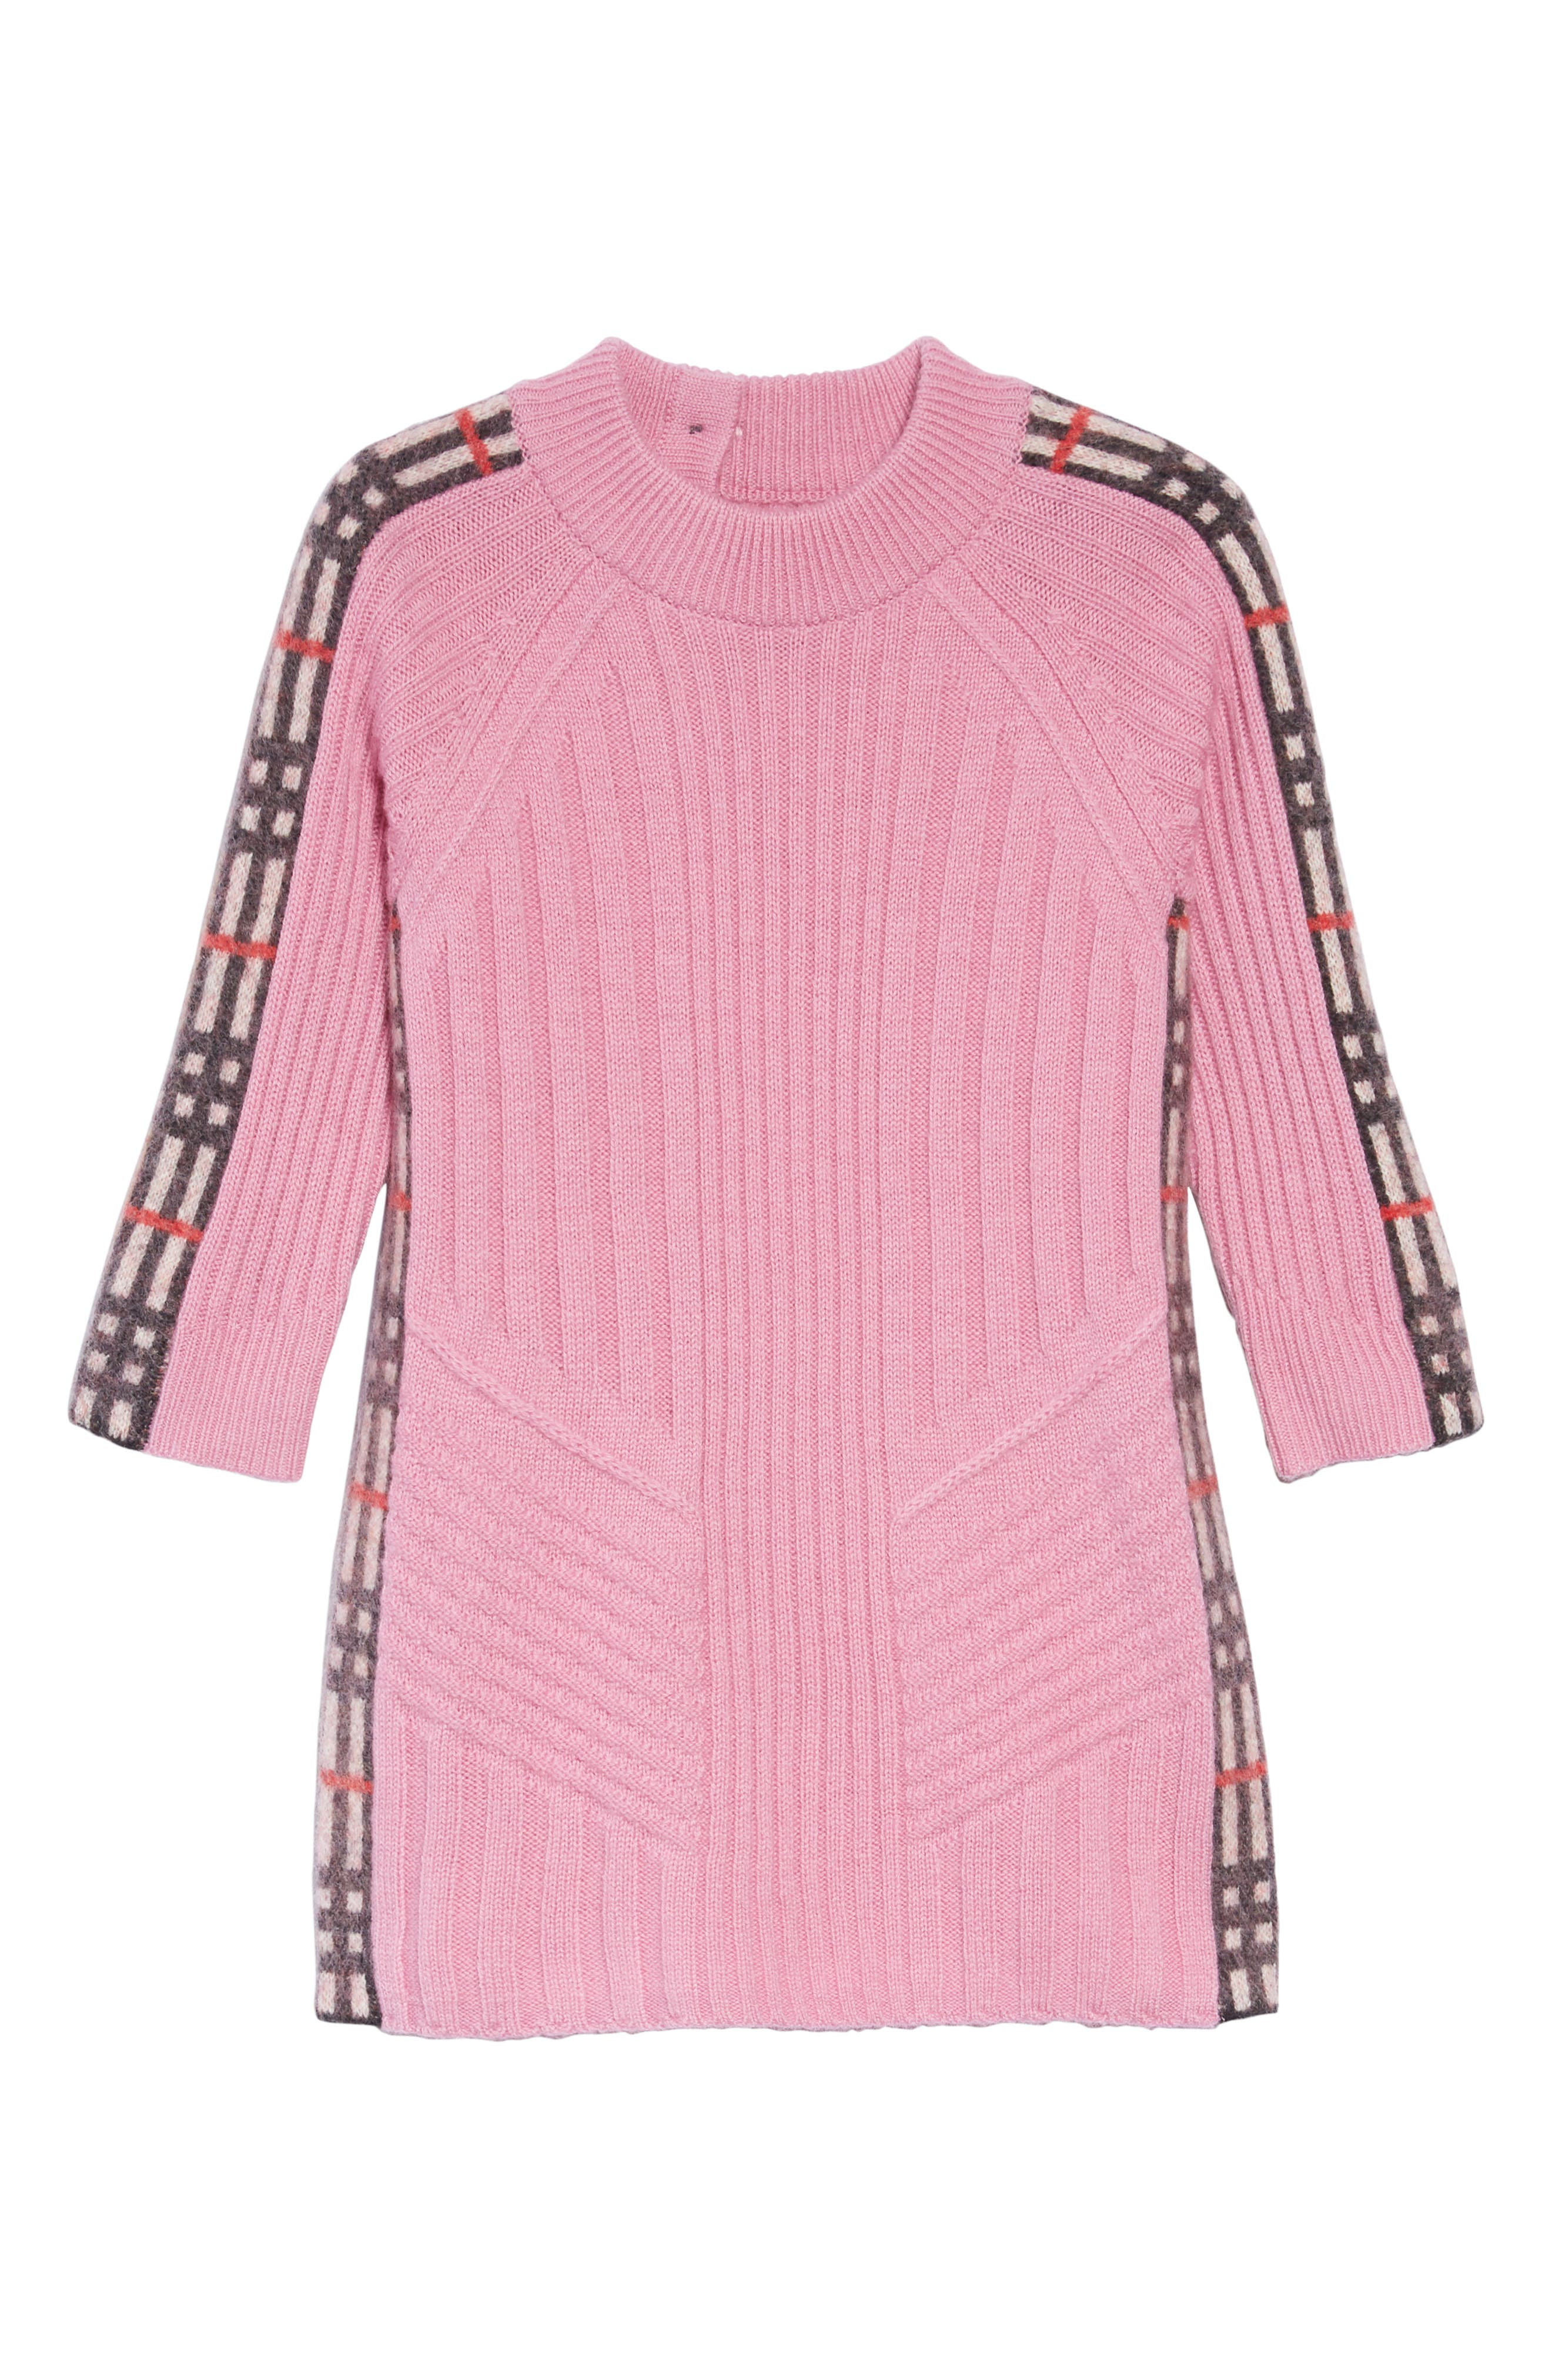 Kids Mini Cathina Check Detail Wool & Cashmere Sweater Dress,                             Main thumbnail 1, color,                             ROSE PINK